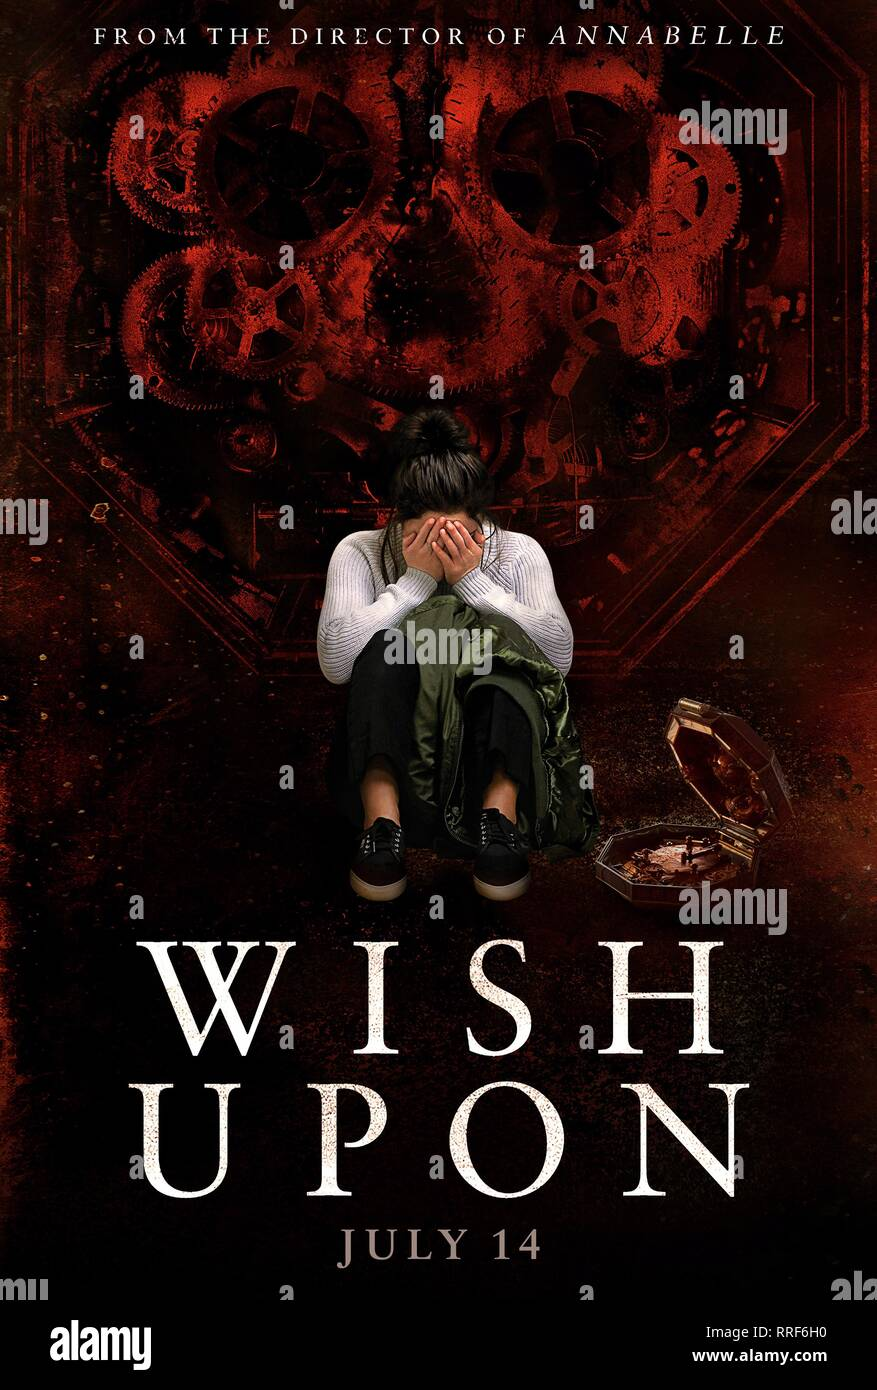 WISH UPON, MOVIE POSTER, 2017 - Stock Image